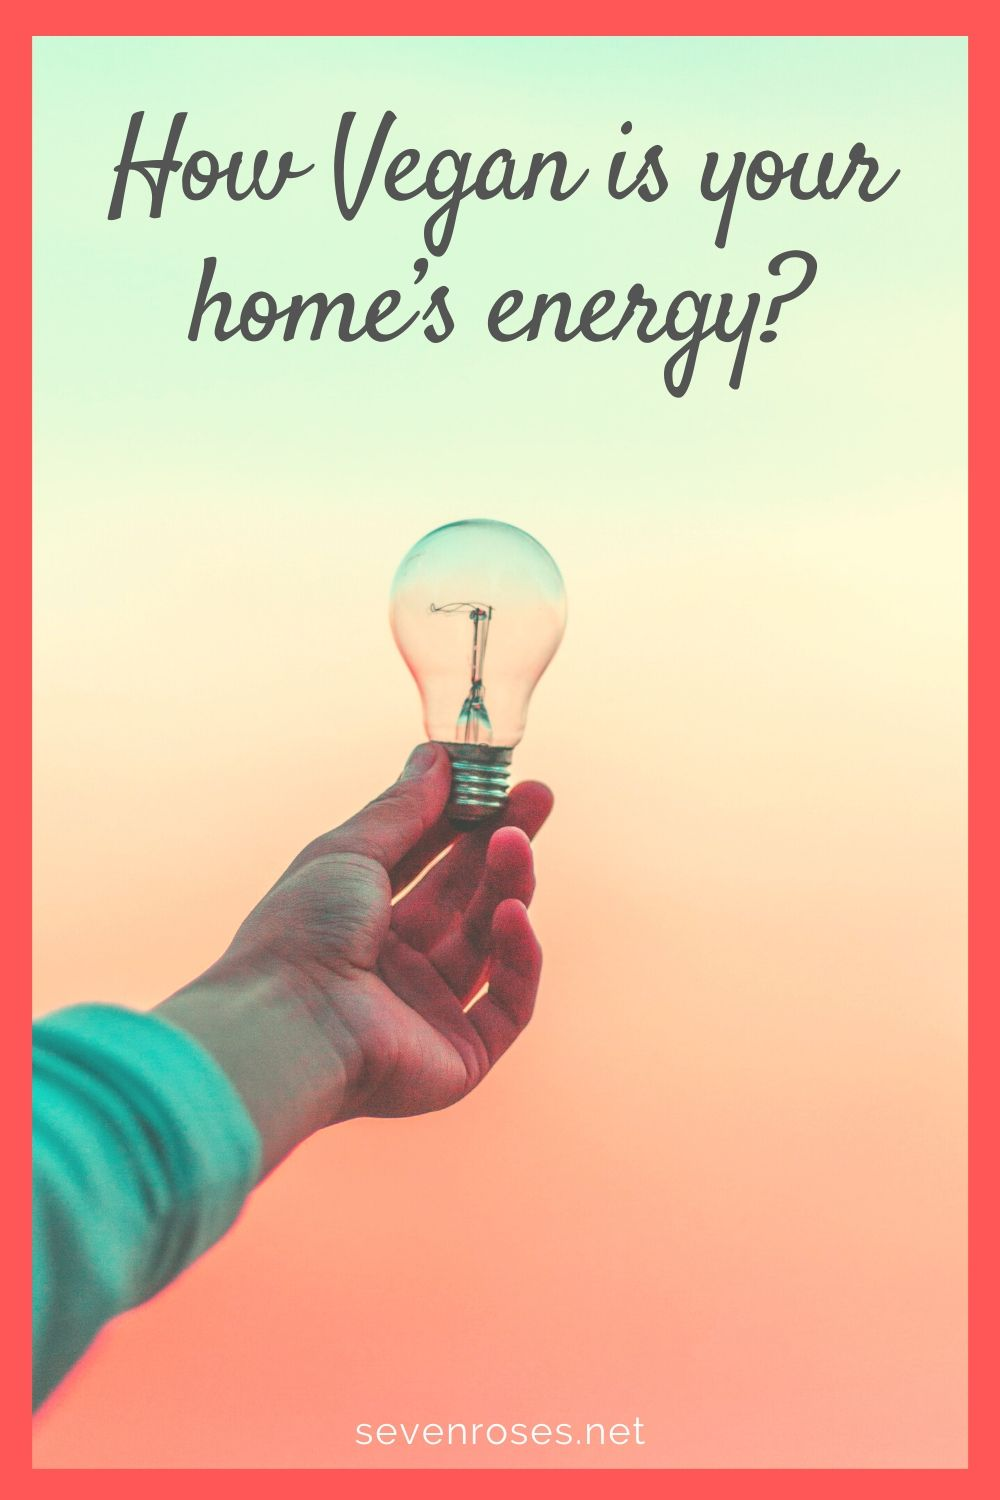 How Vegan is your home's energy?